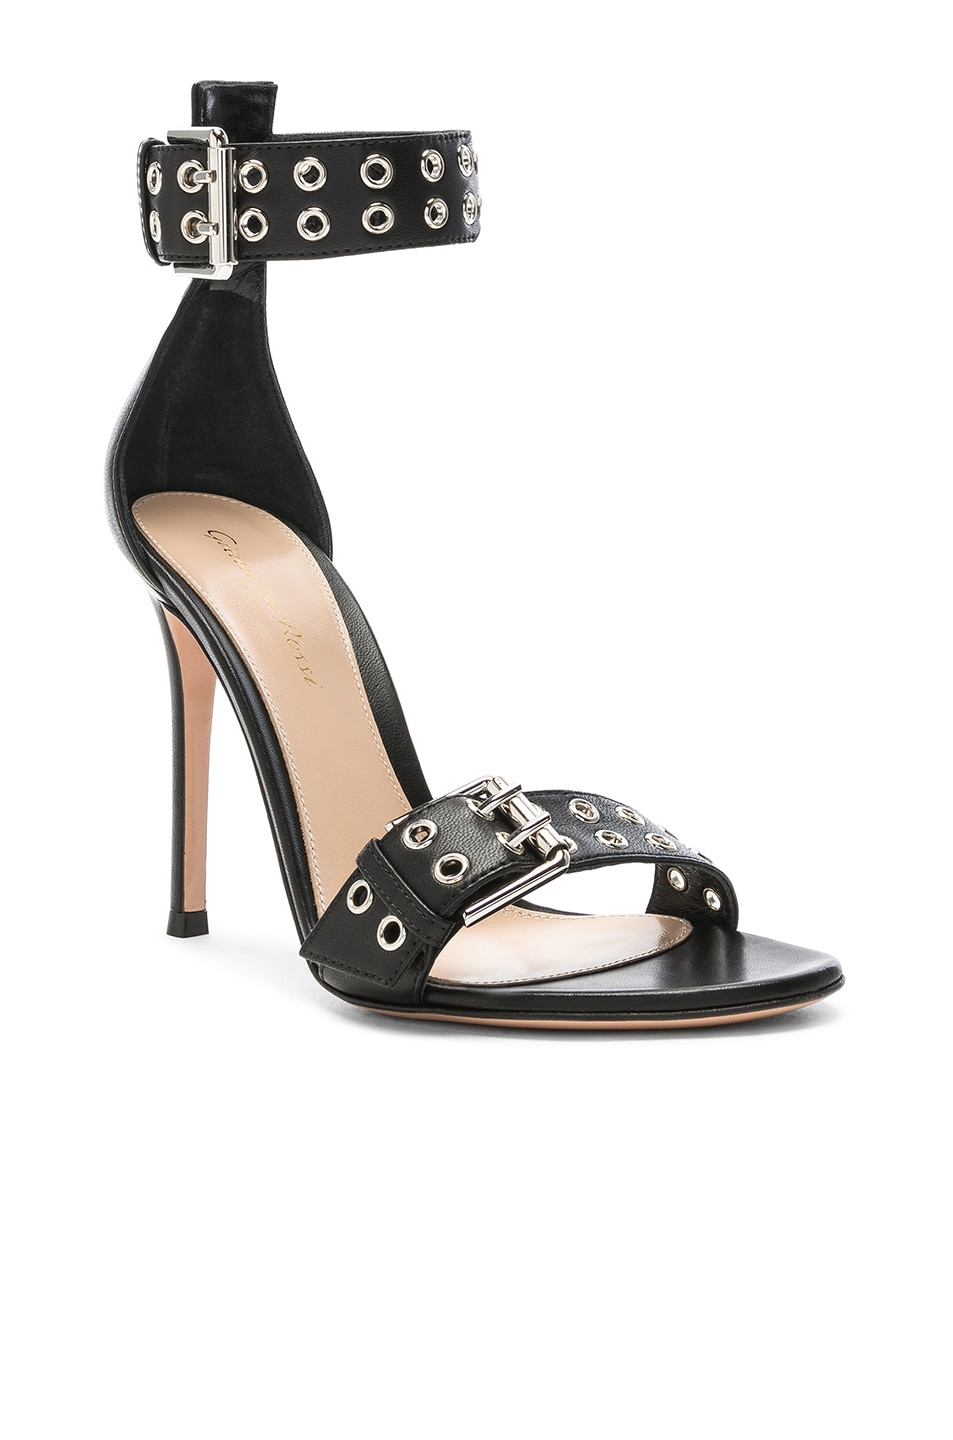 Image 2 of Gianvito Rossi Leather Buckle Ankle Strap Sandals in Black